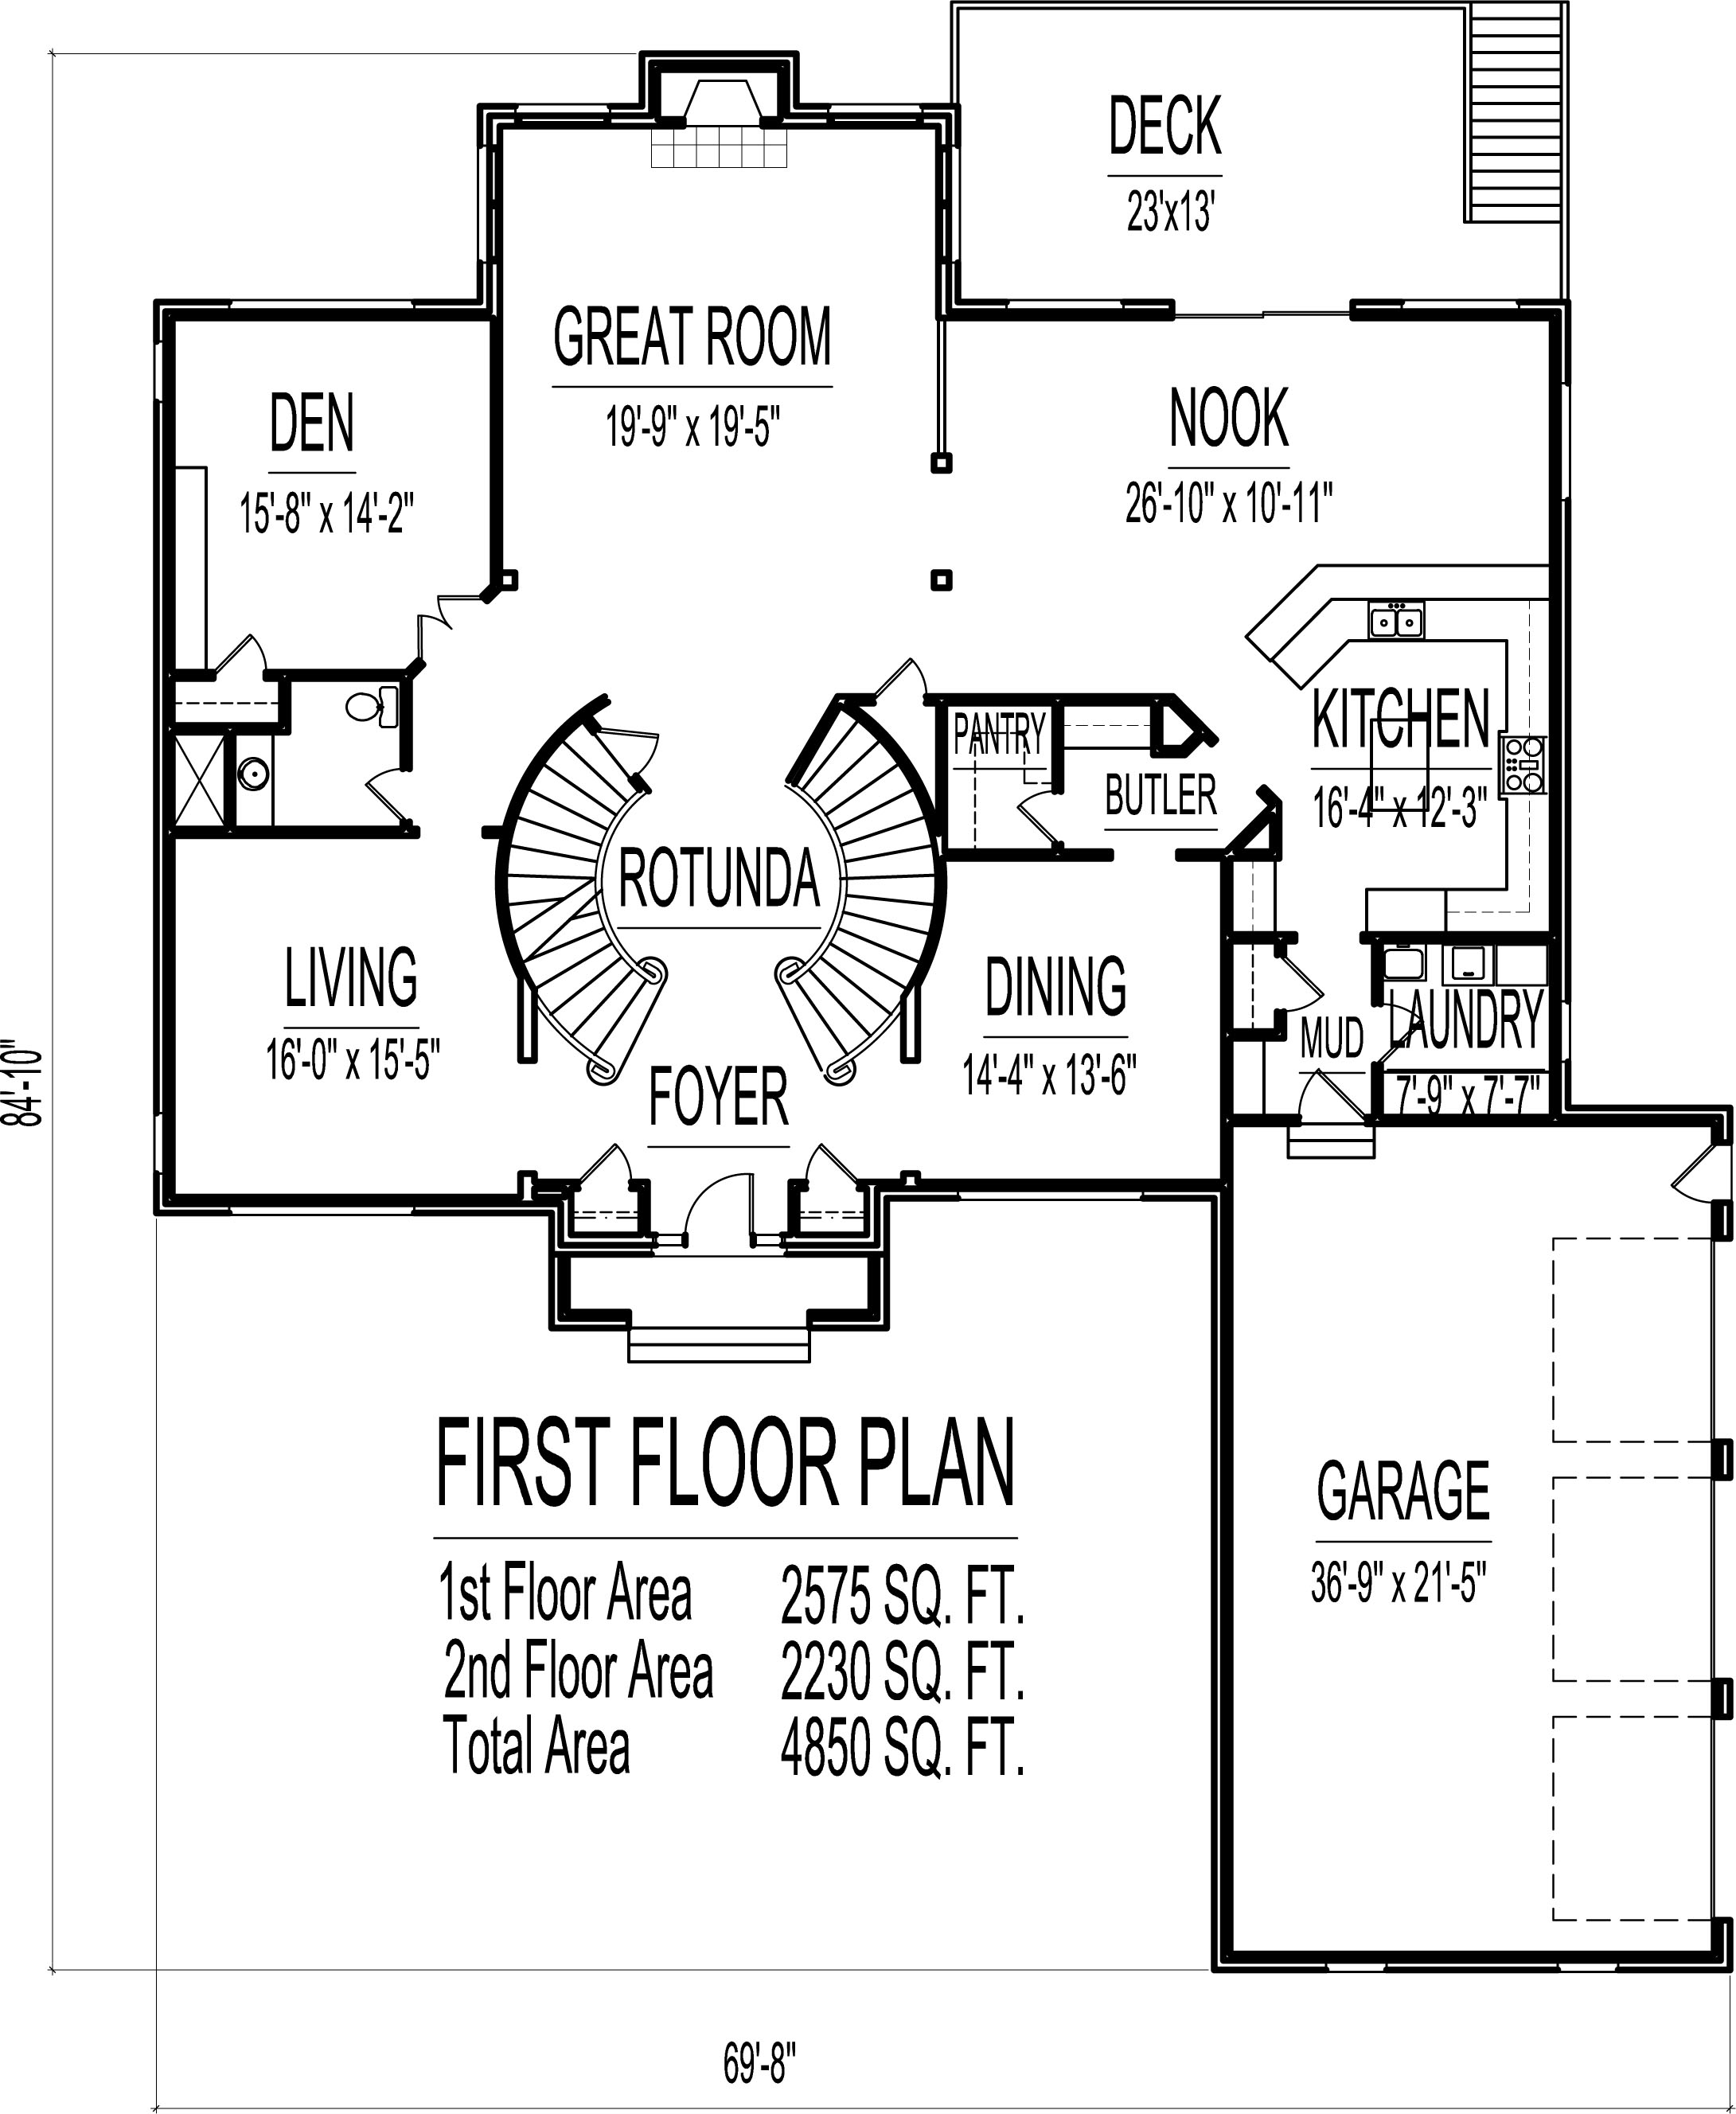 4500 square foot house floor plans 5 bedroom 2 story for Dual staircase house plans